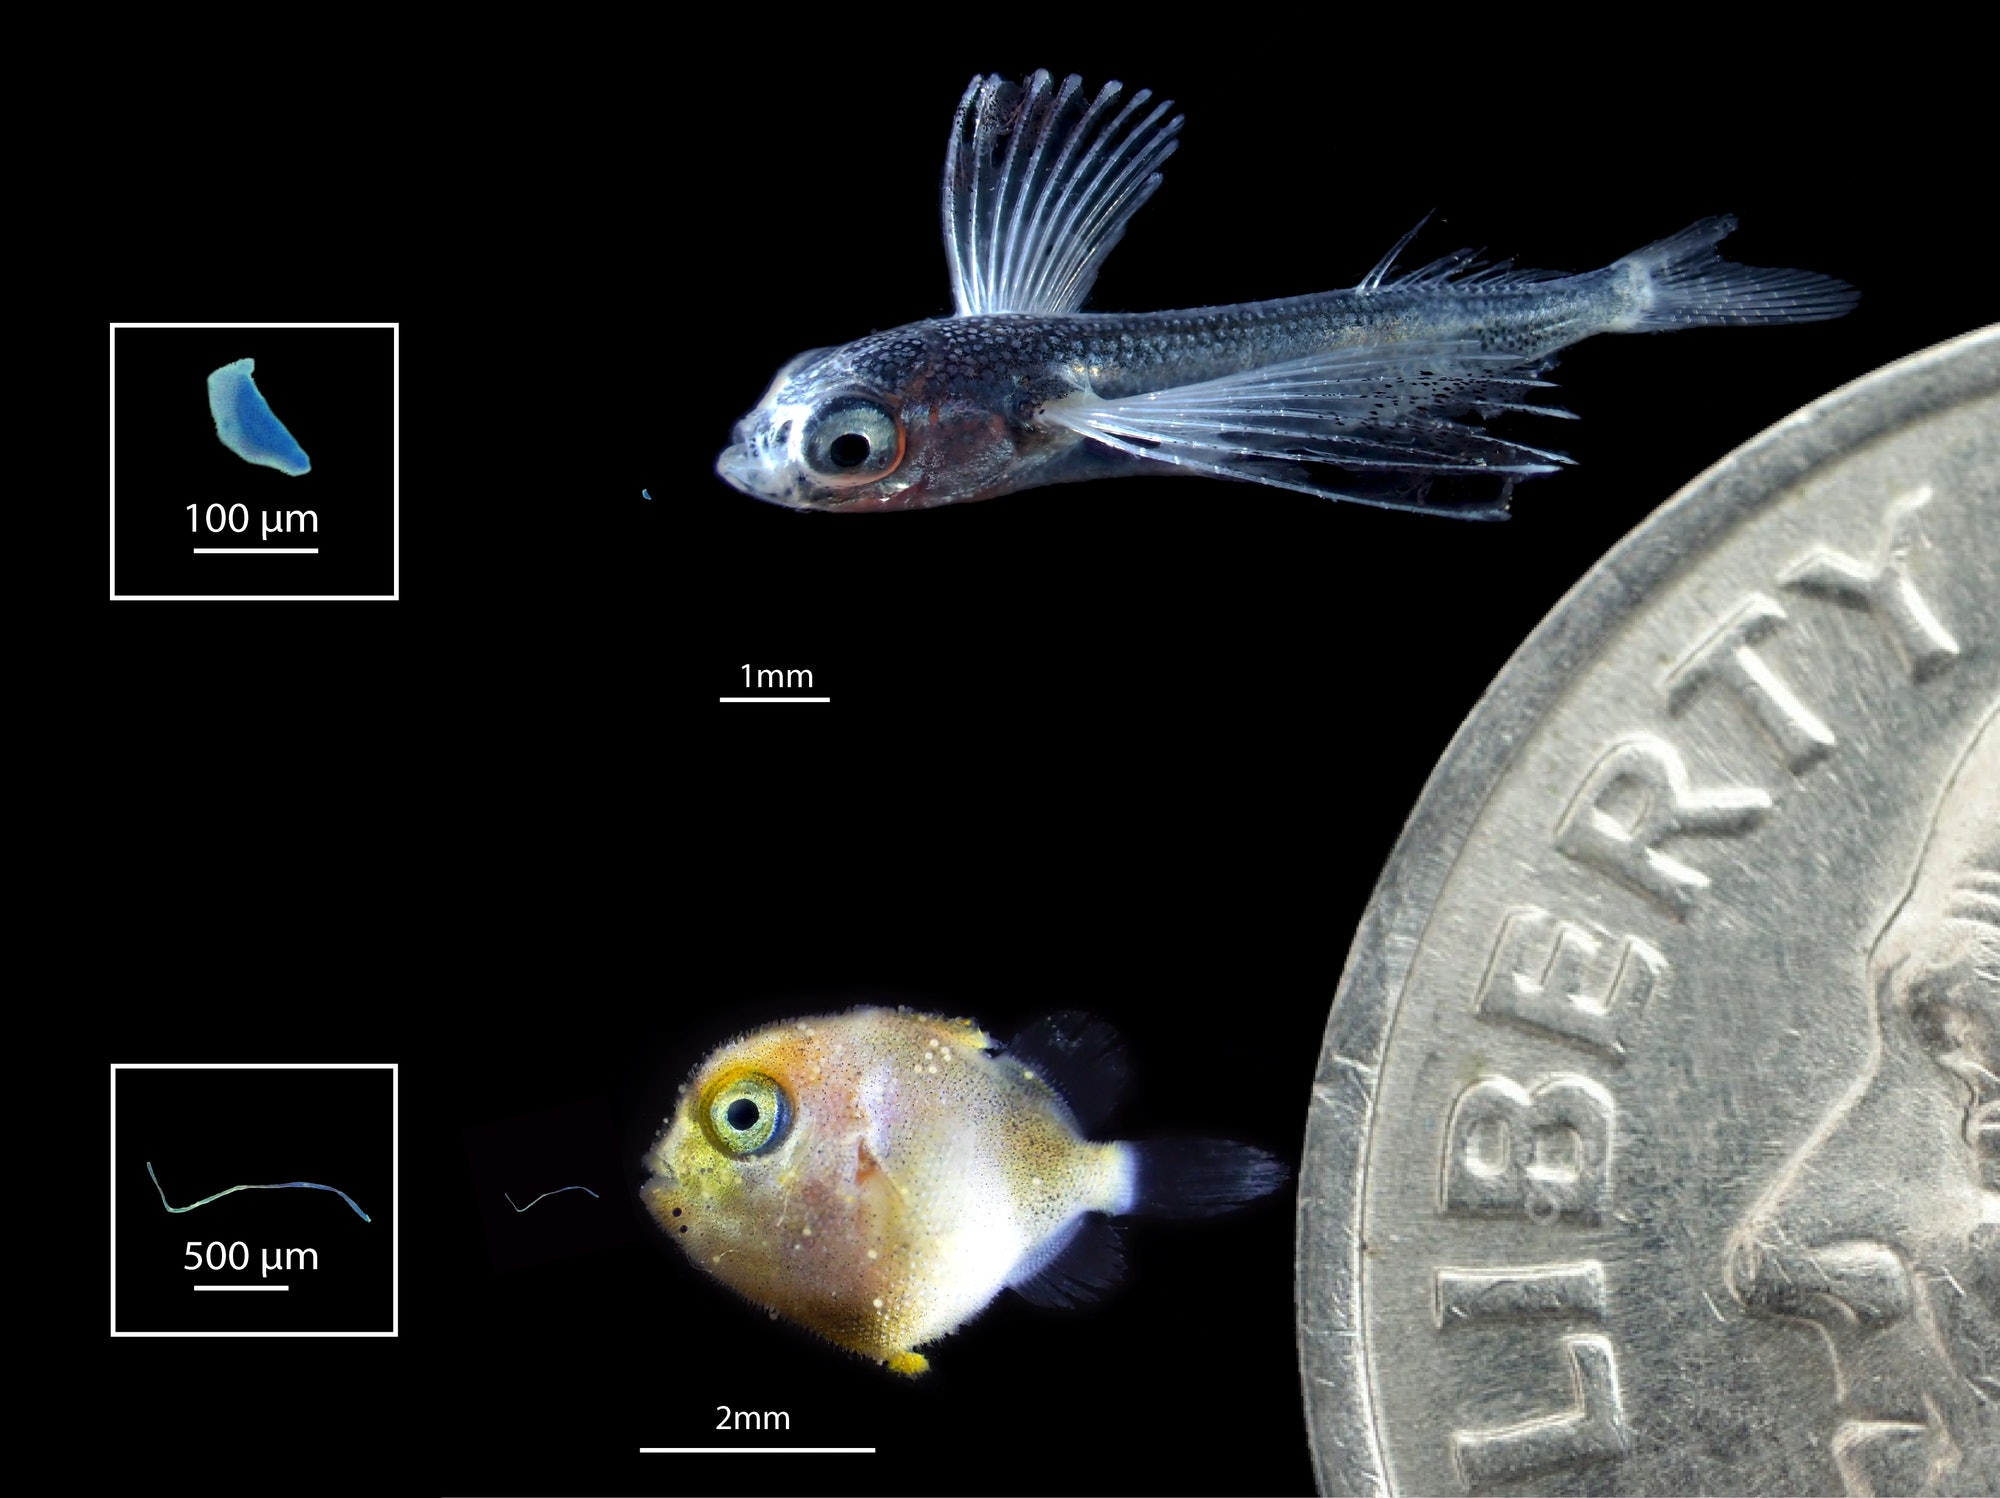 two tiny fish shown next to a dime for scale with pieces of plastic